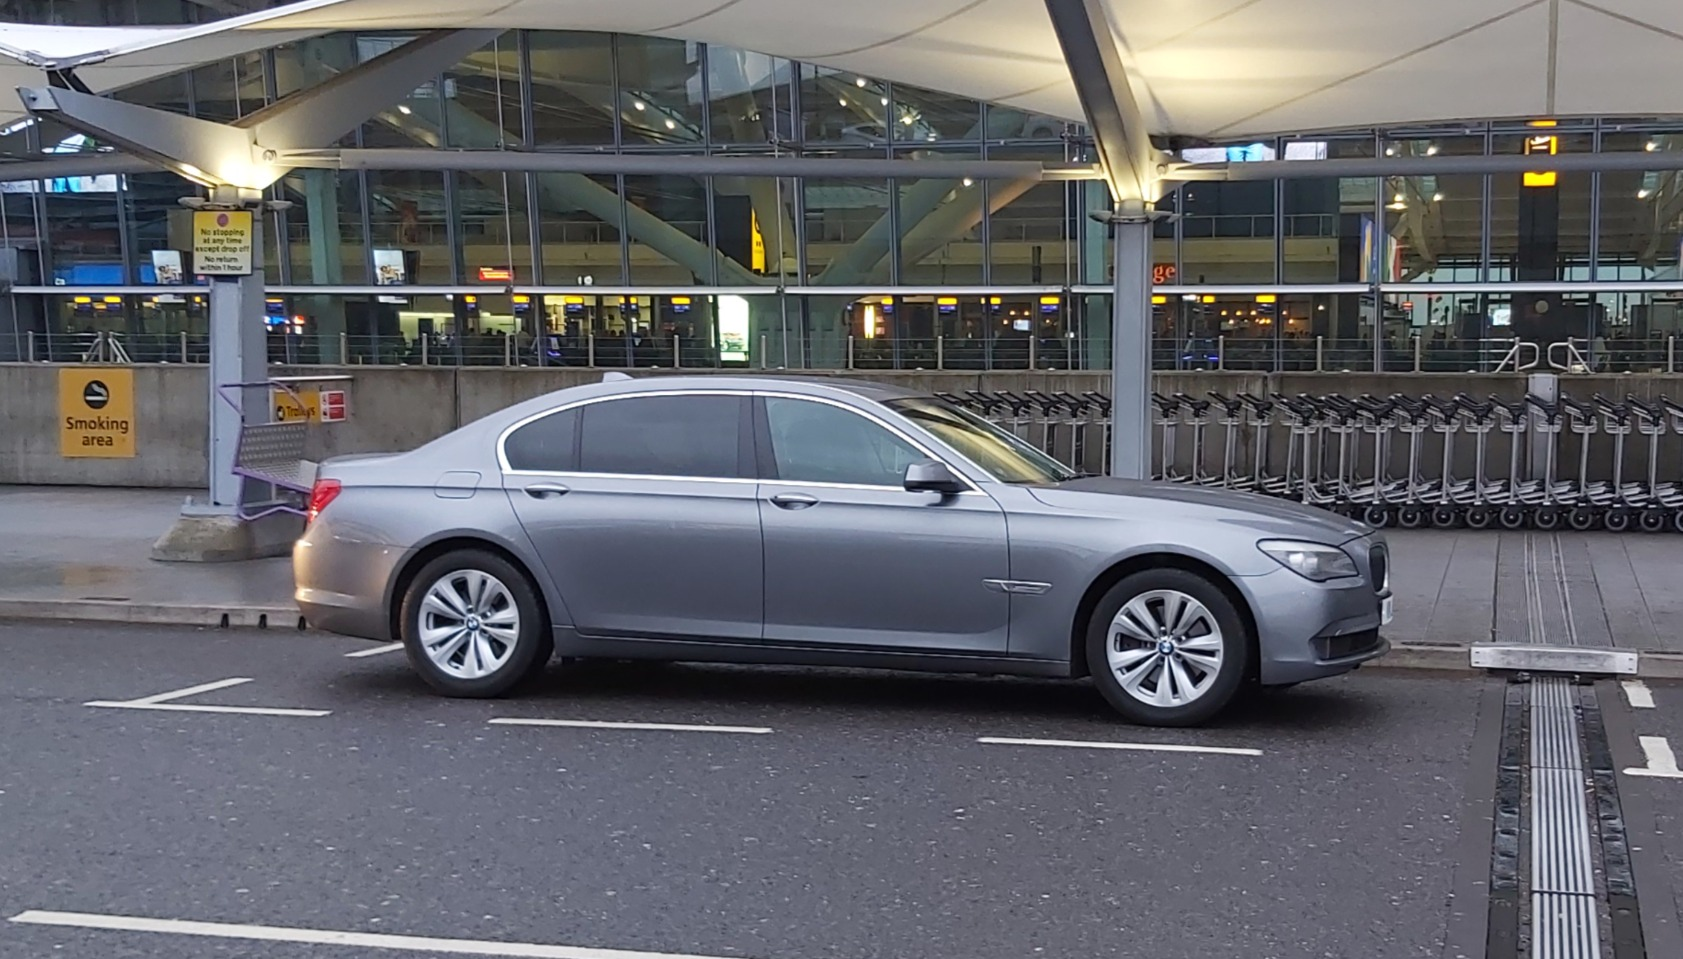 LUXURY AIRPORT TAXI